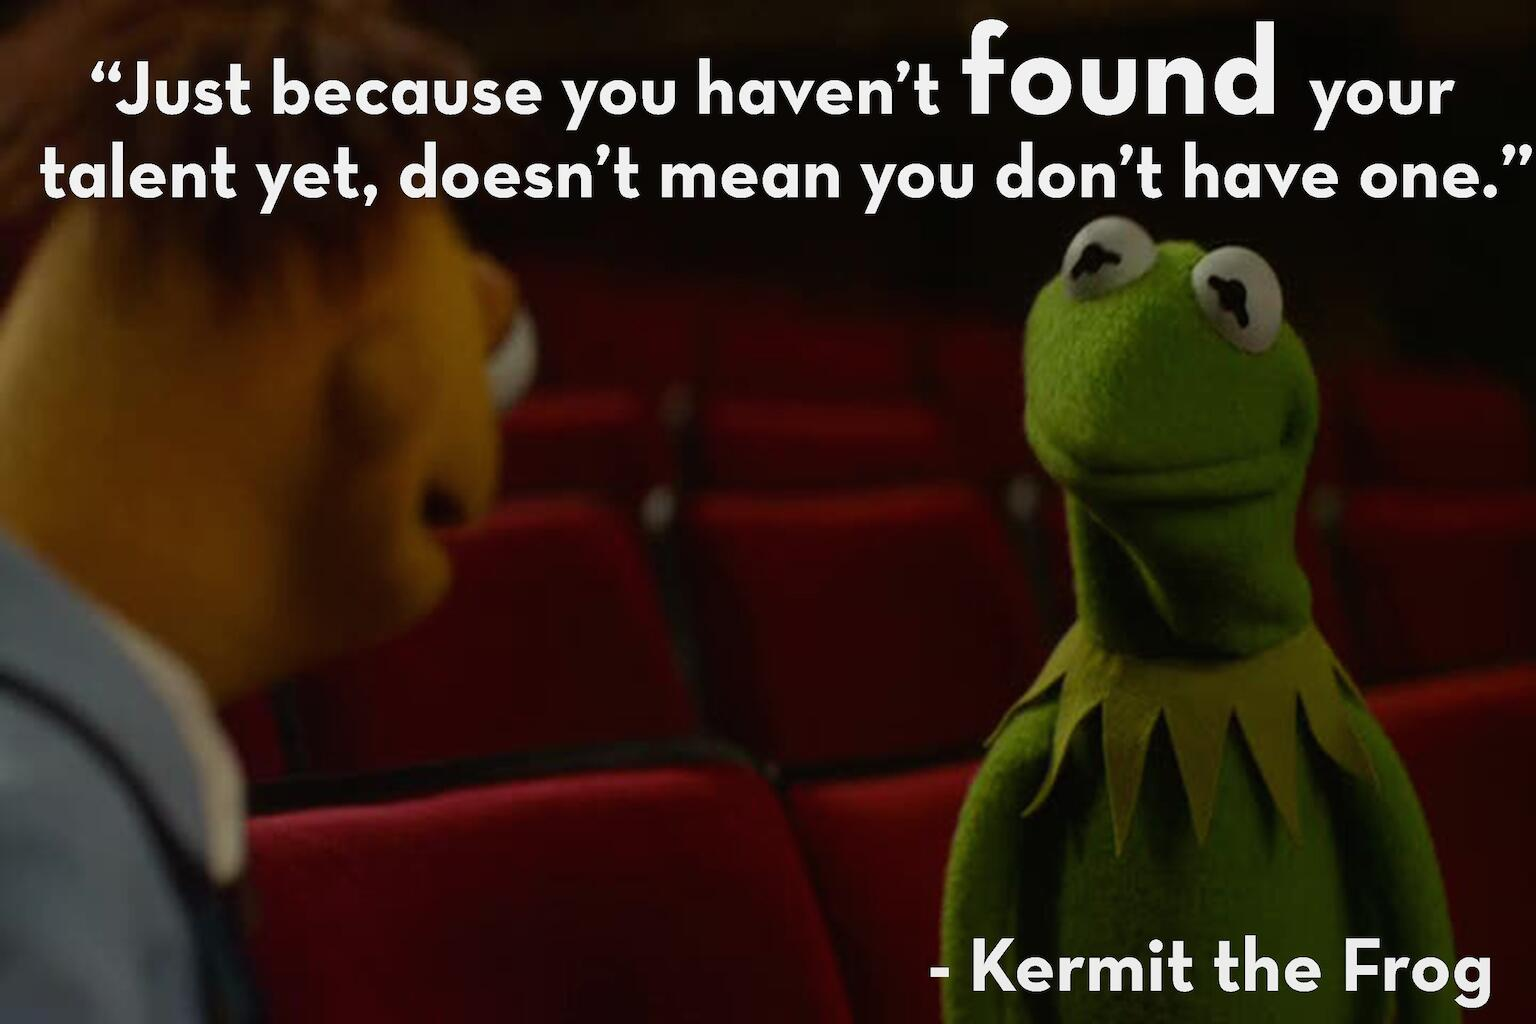 [Image] Kermit speaks the truth